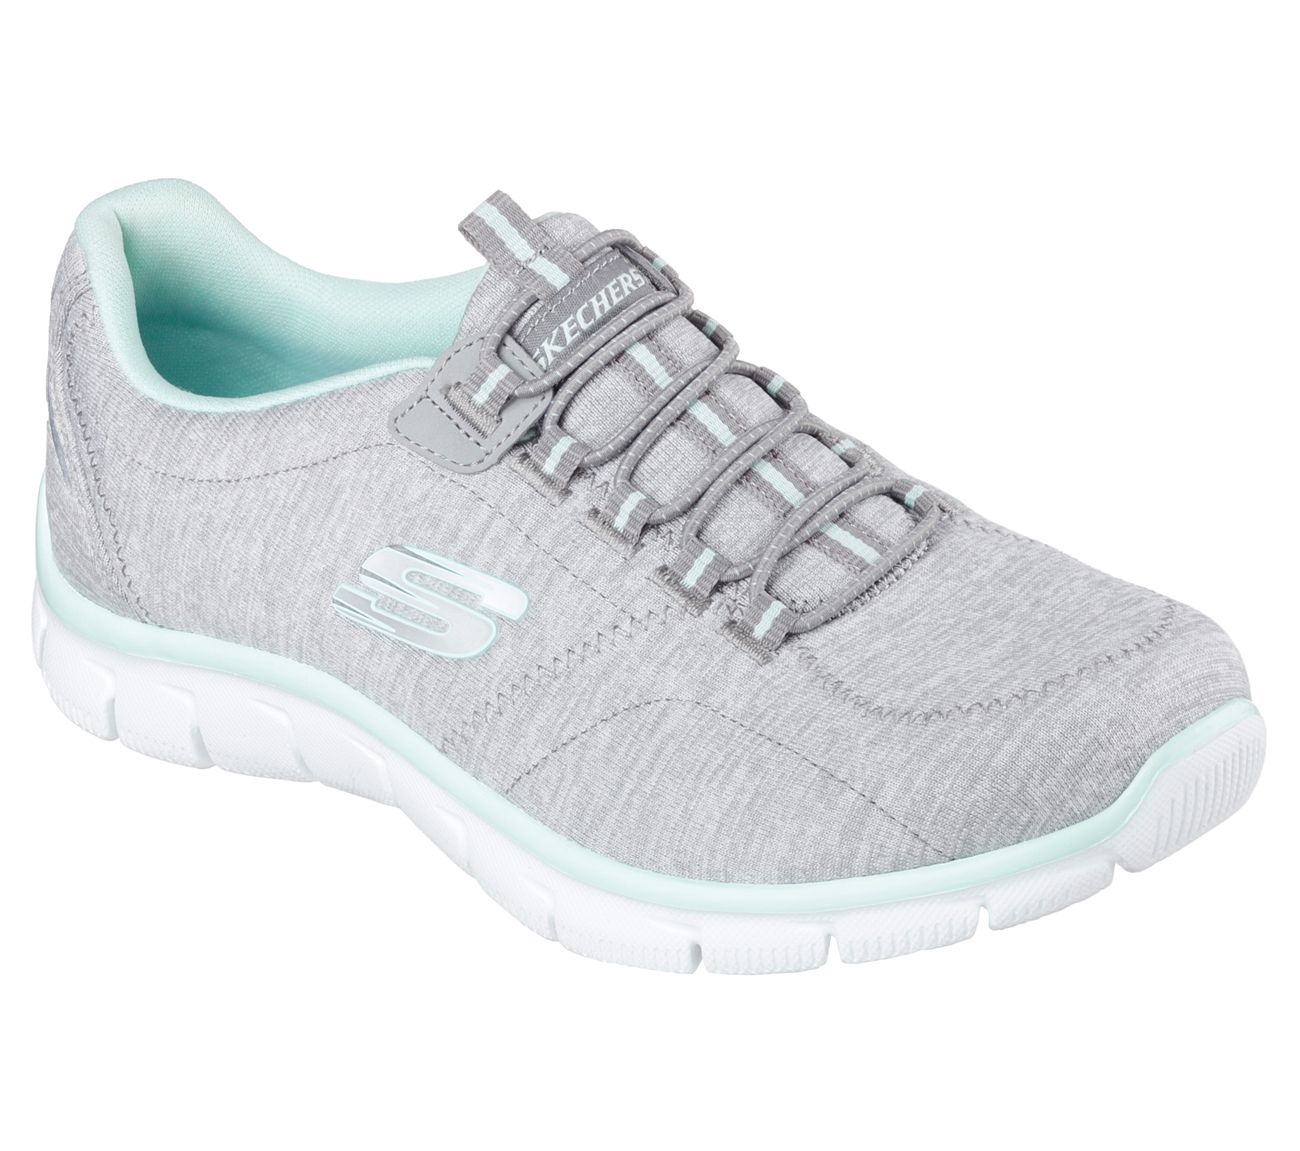 Buy SKECHERS Relaxed Fit: Empire  Heart To HeartWalking Shoes Shoes only65 00